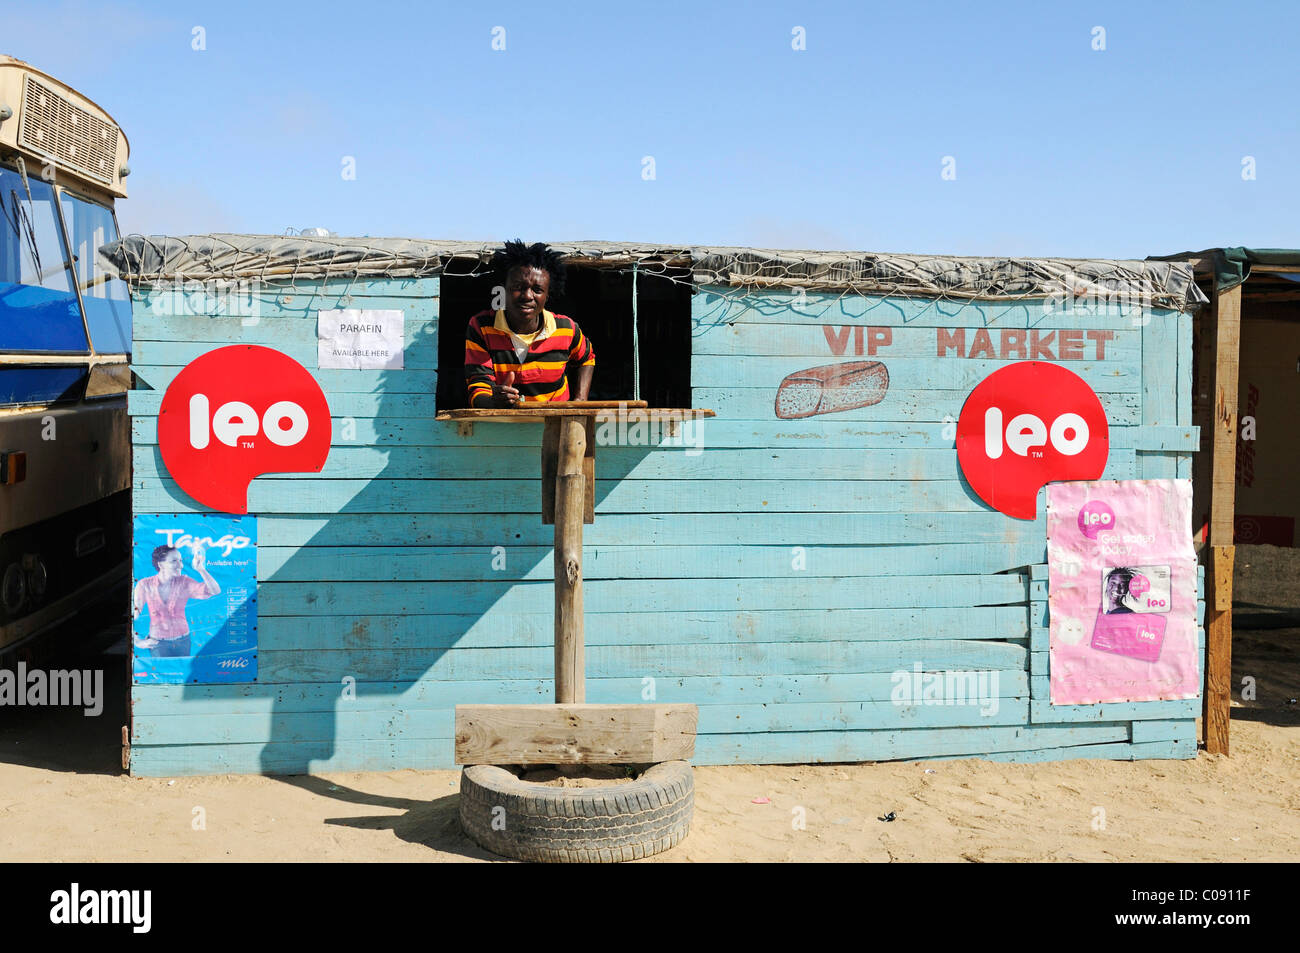 Vendor in the VIP Market shop in the Mondesa township, Swakopmund town, Namibia, Africa - Stock Image